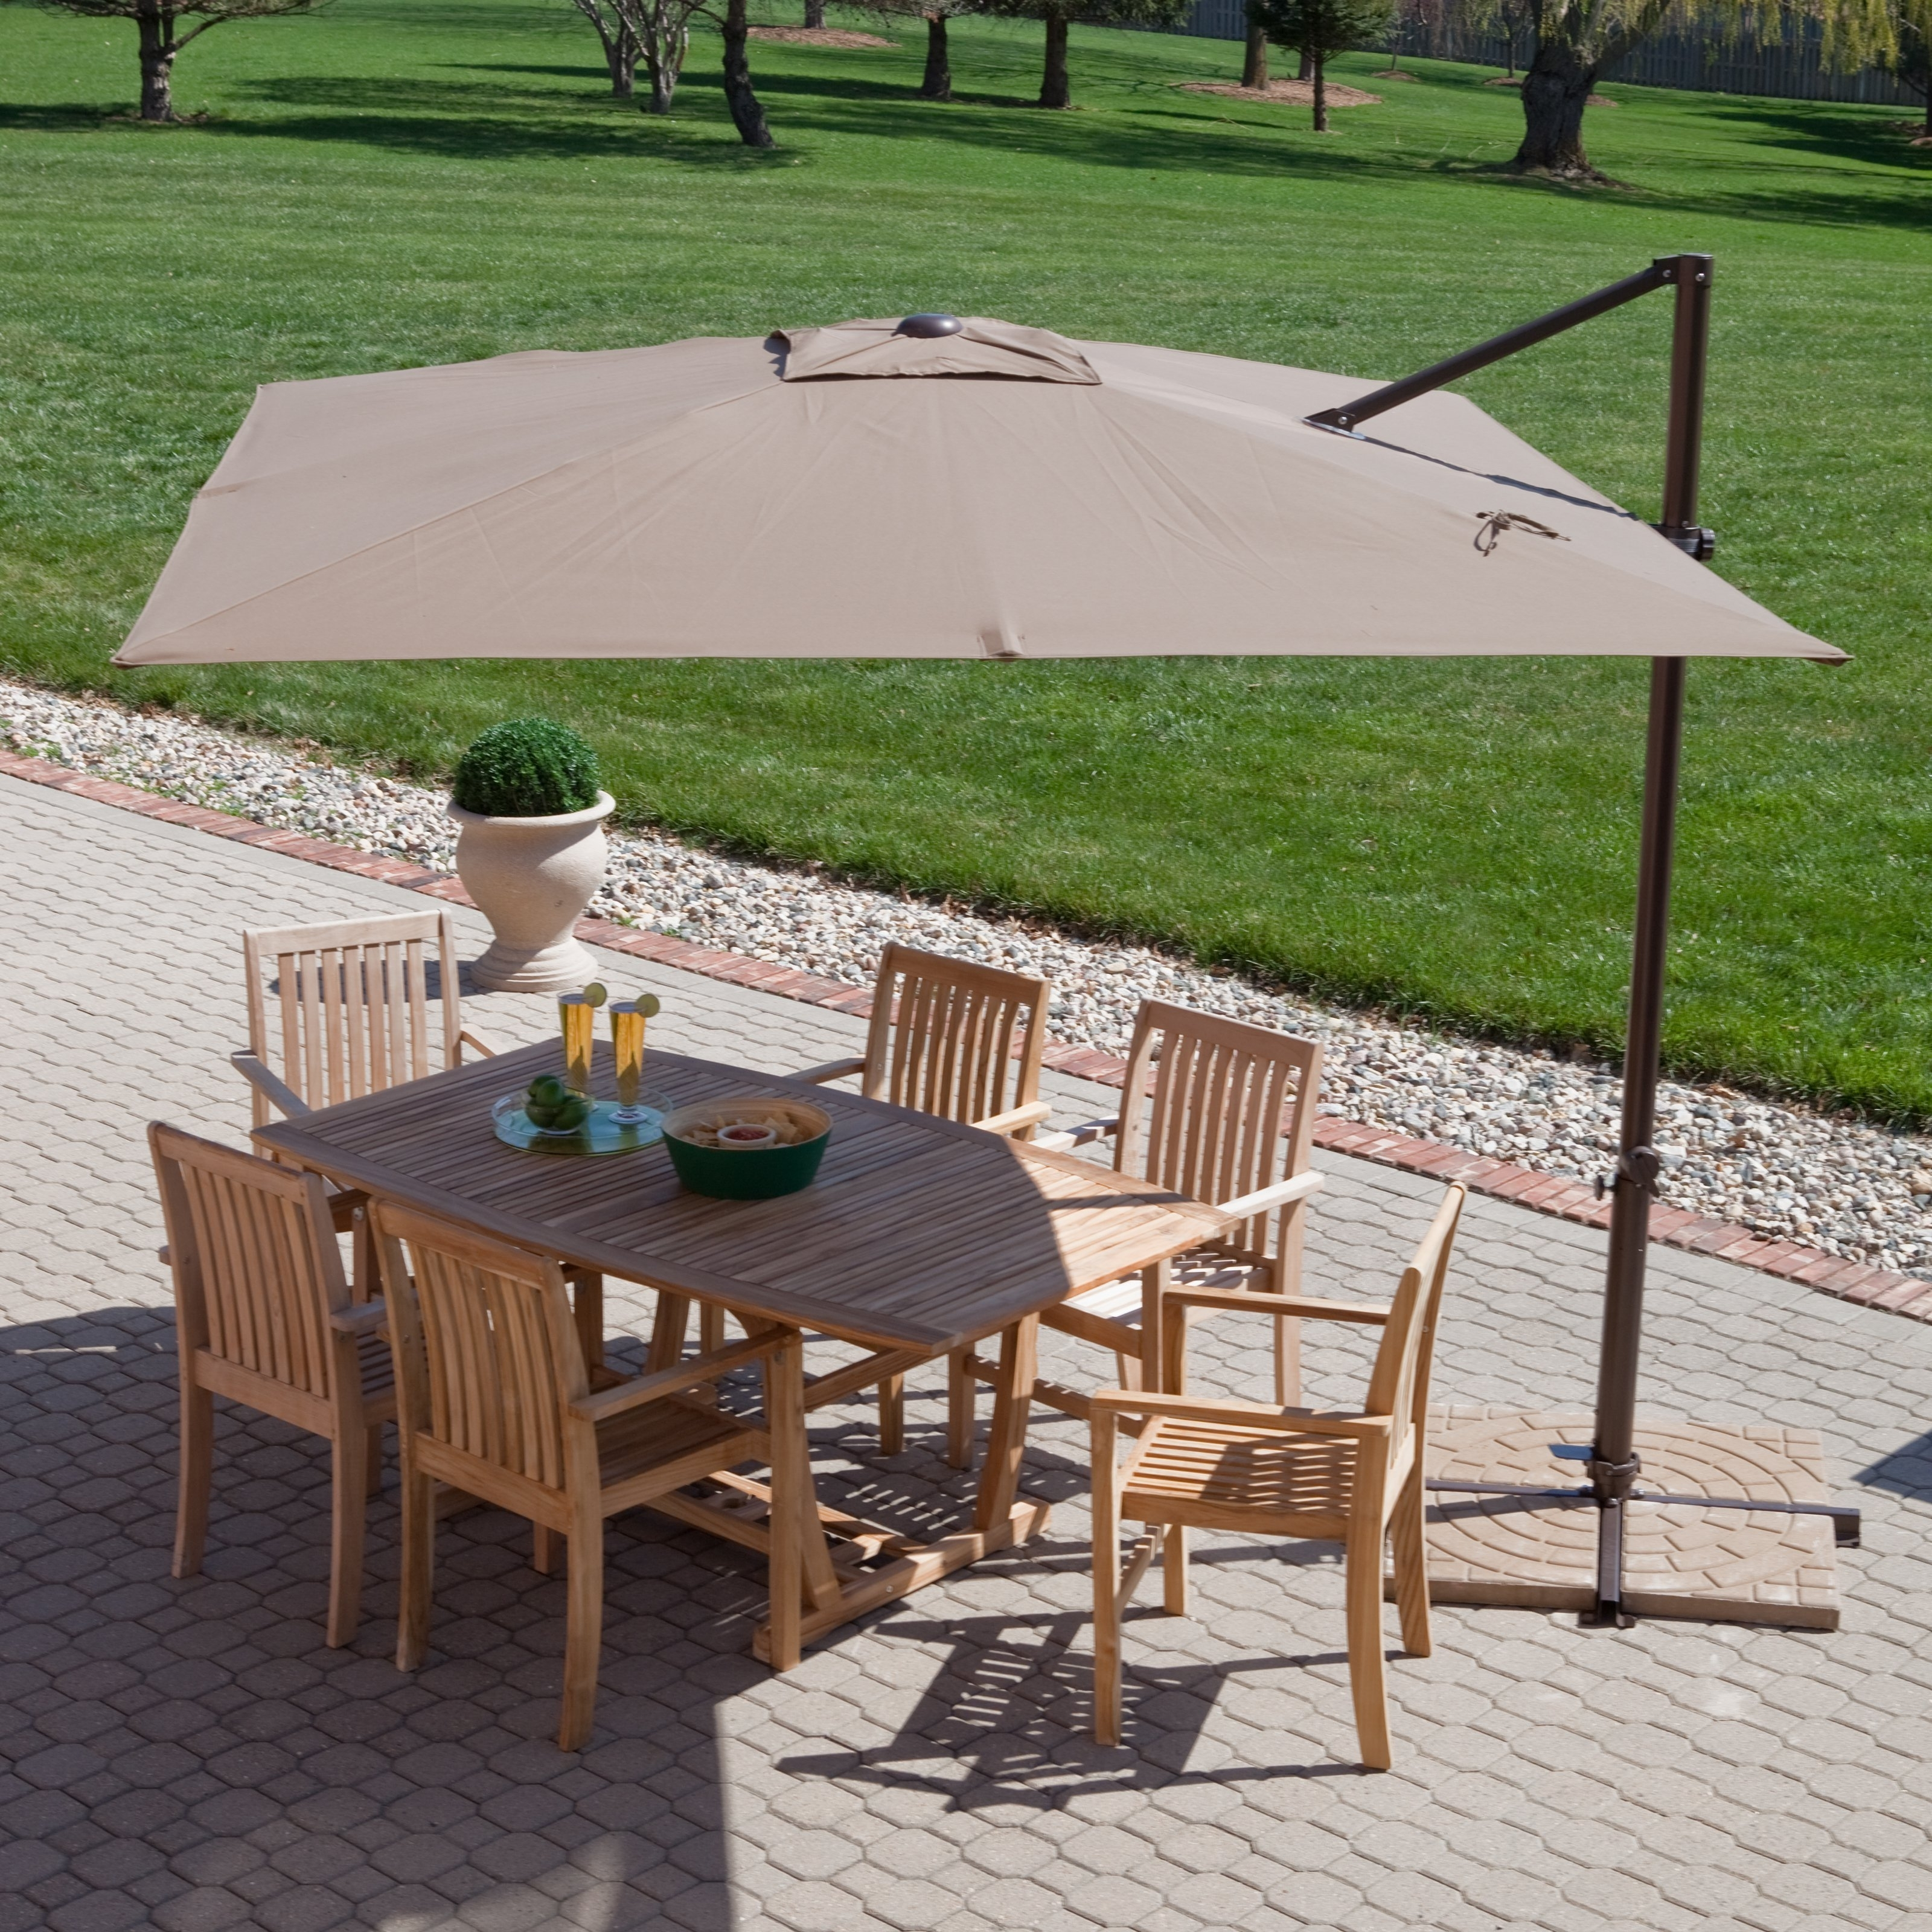 Square Mocha Fabric Patio Umbrella With Black Metal Base Over Brown For Most Popular Rectangle Patio Umbrellas (View 20 of 20)